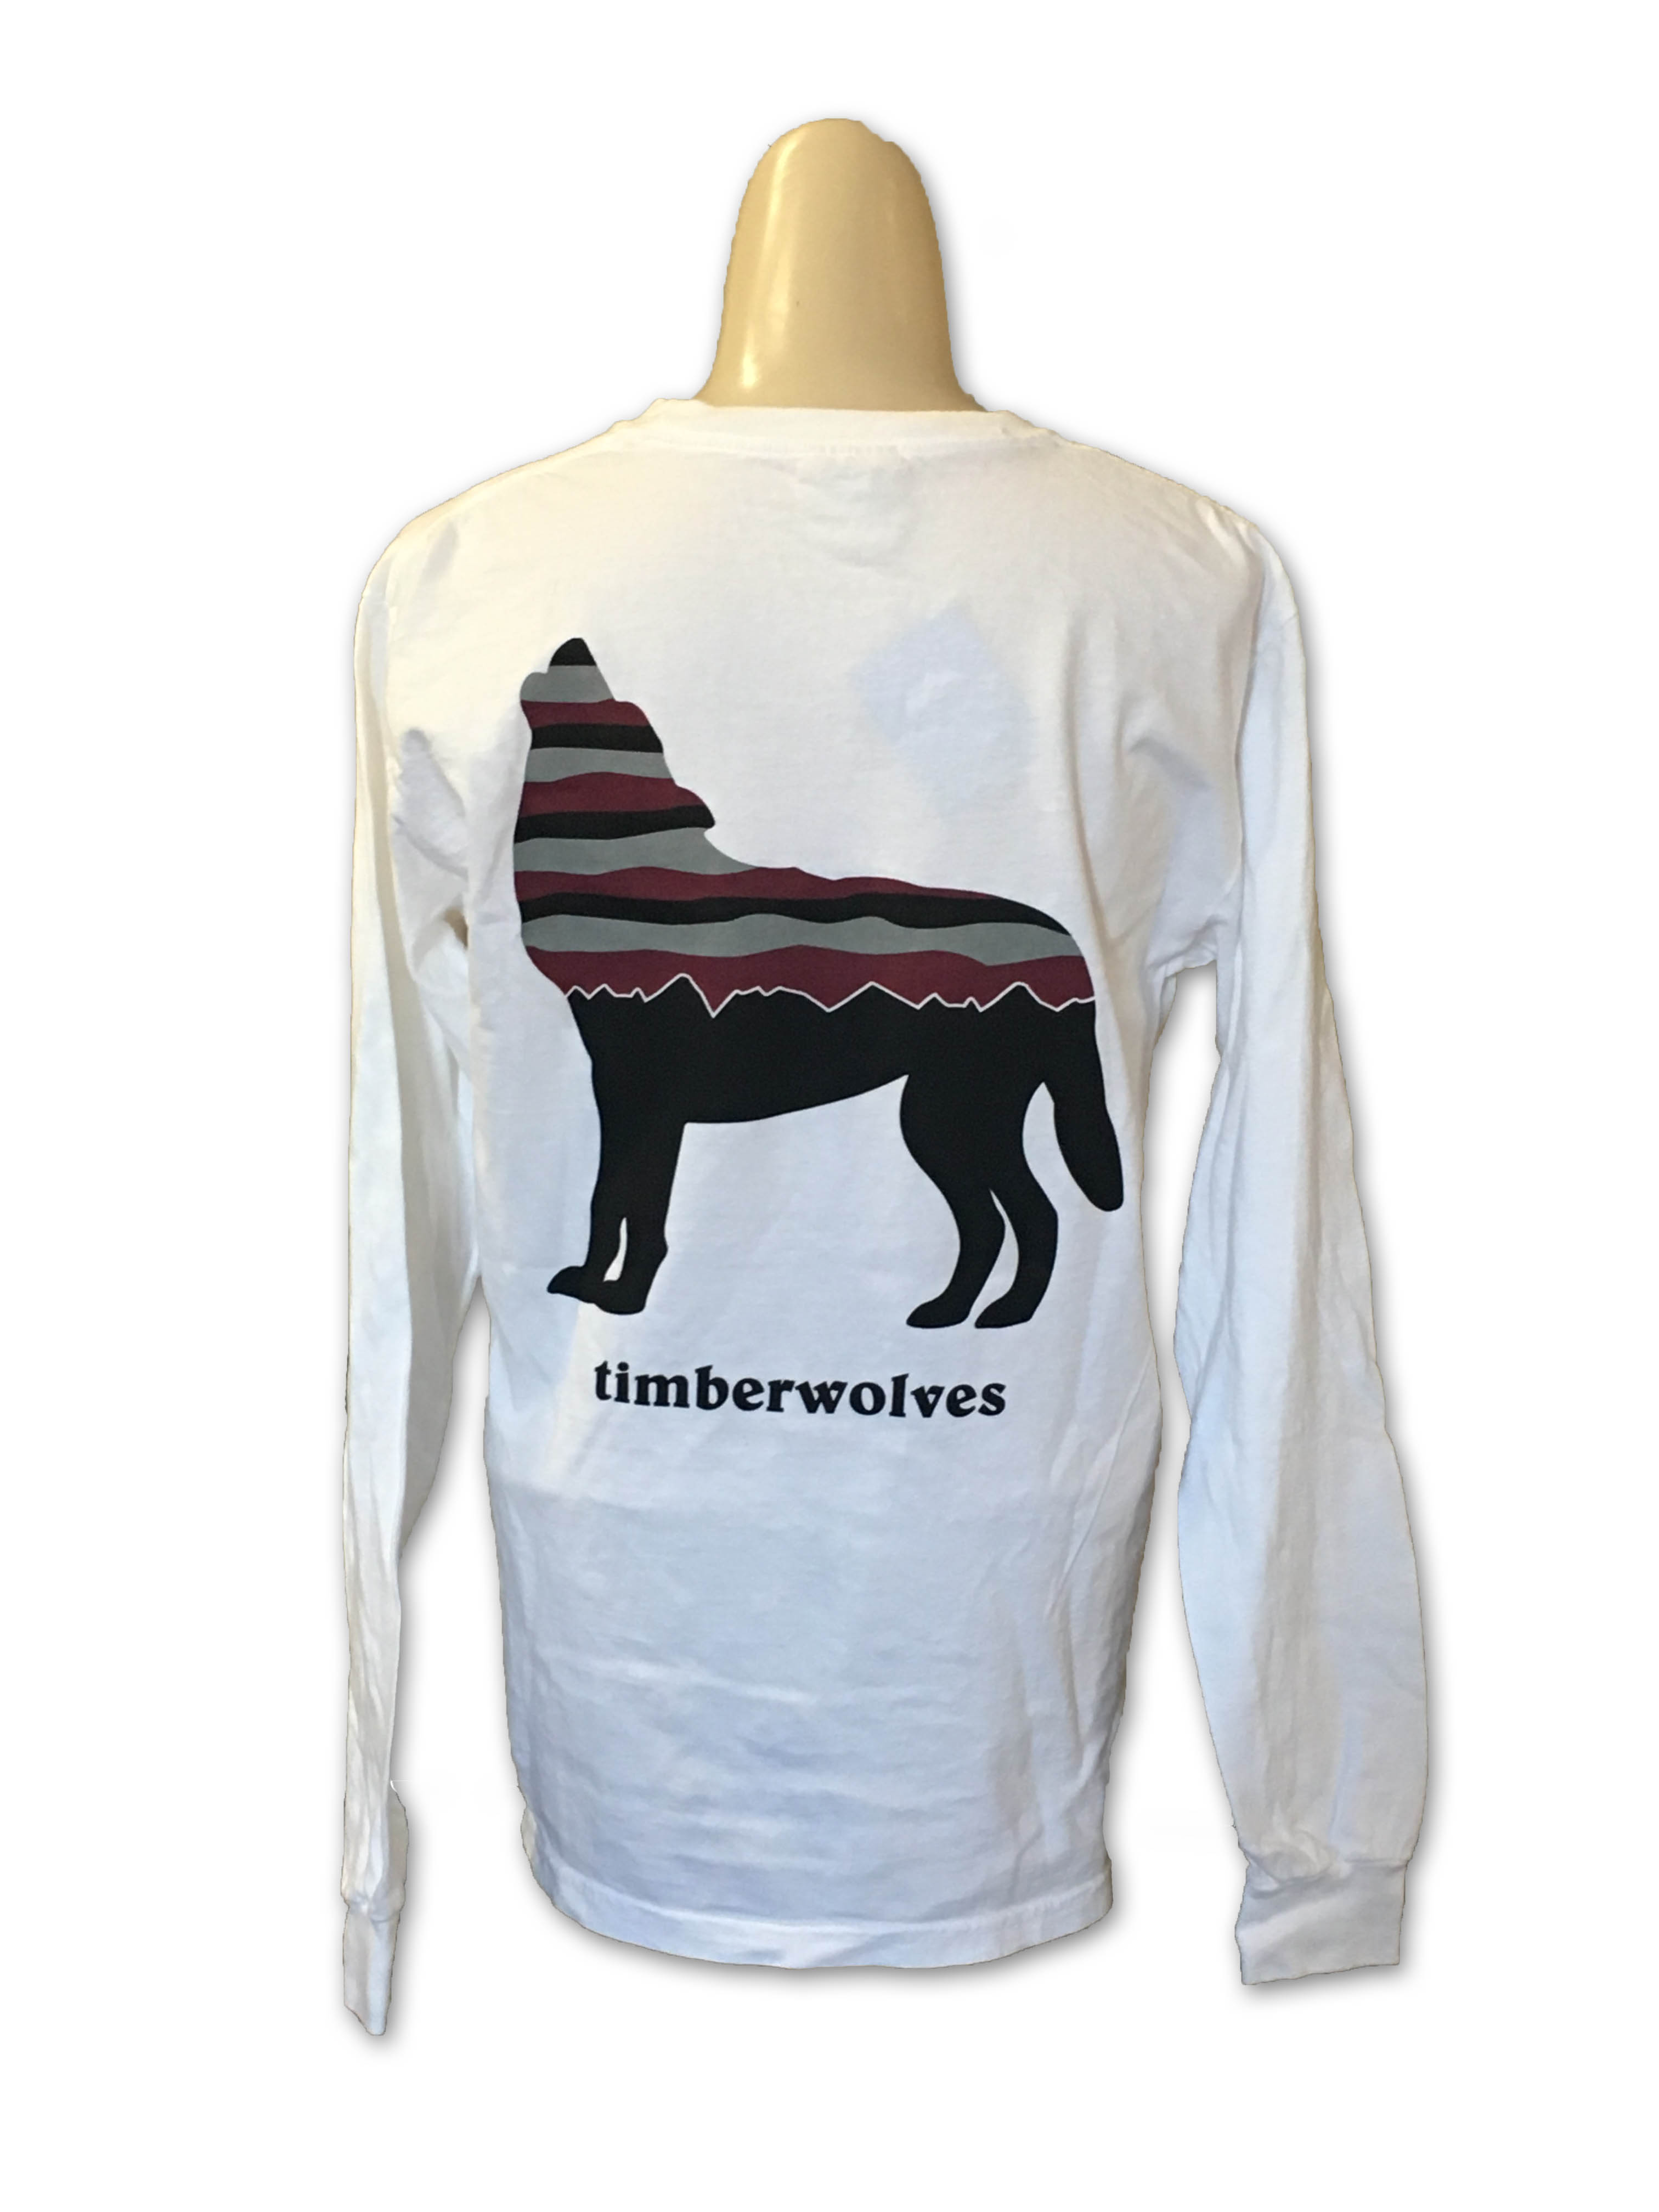 Timberwolves Outdoors Long Sleeve